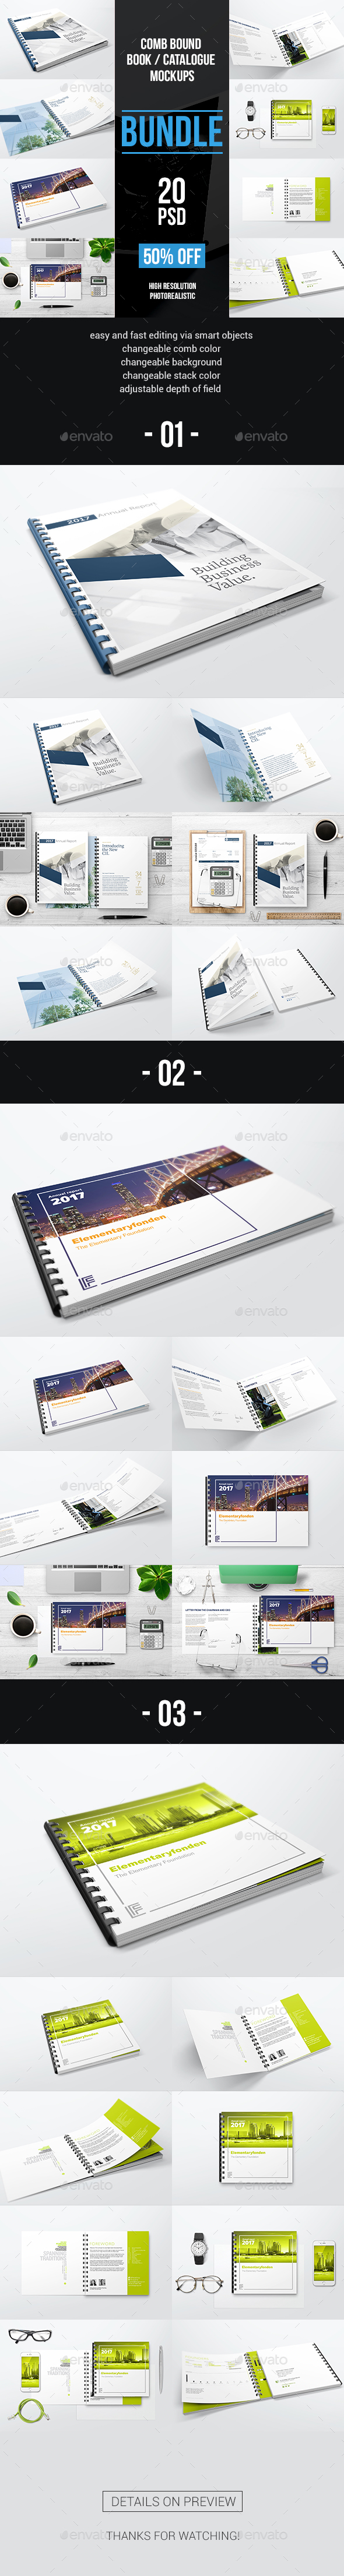 GraphicRiver Comb Bound Book Catalogue Bundle Mockups 20709554